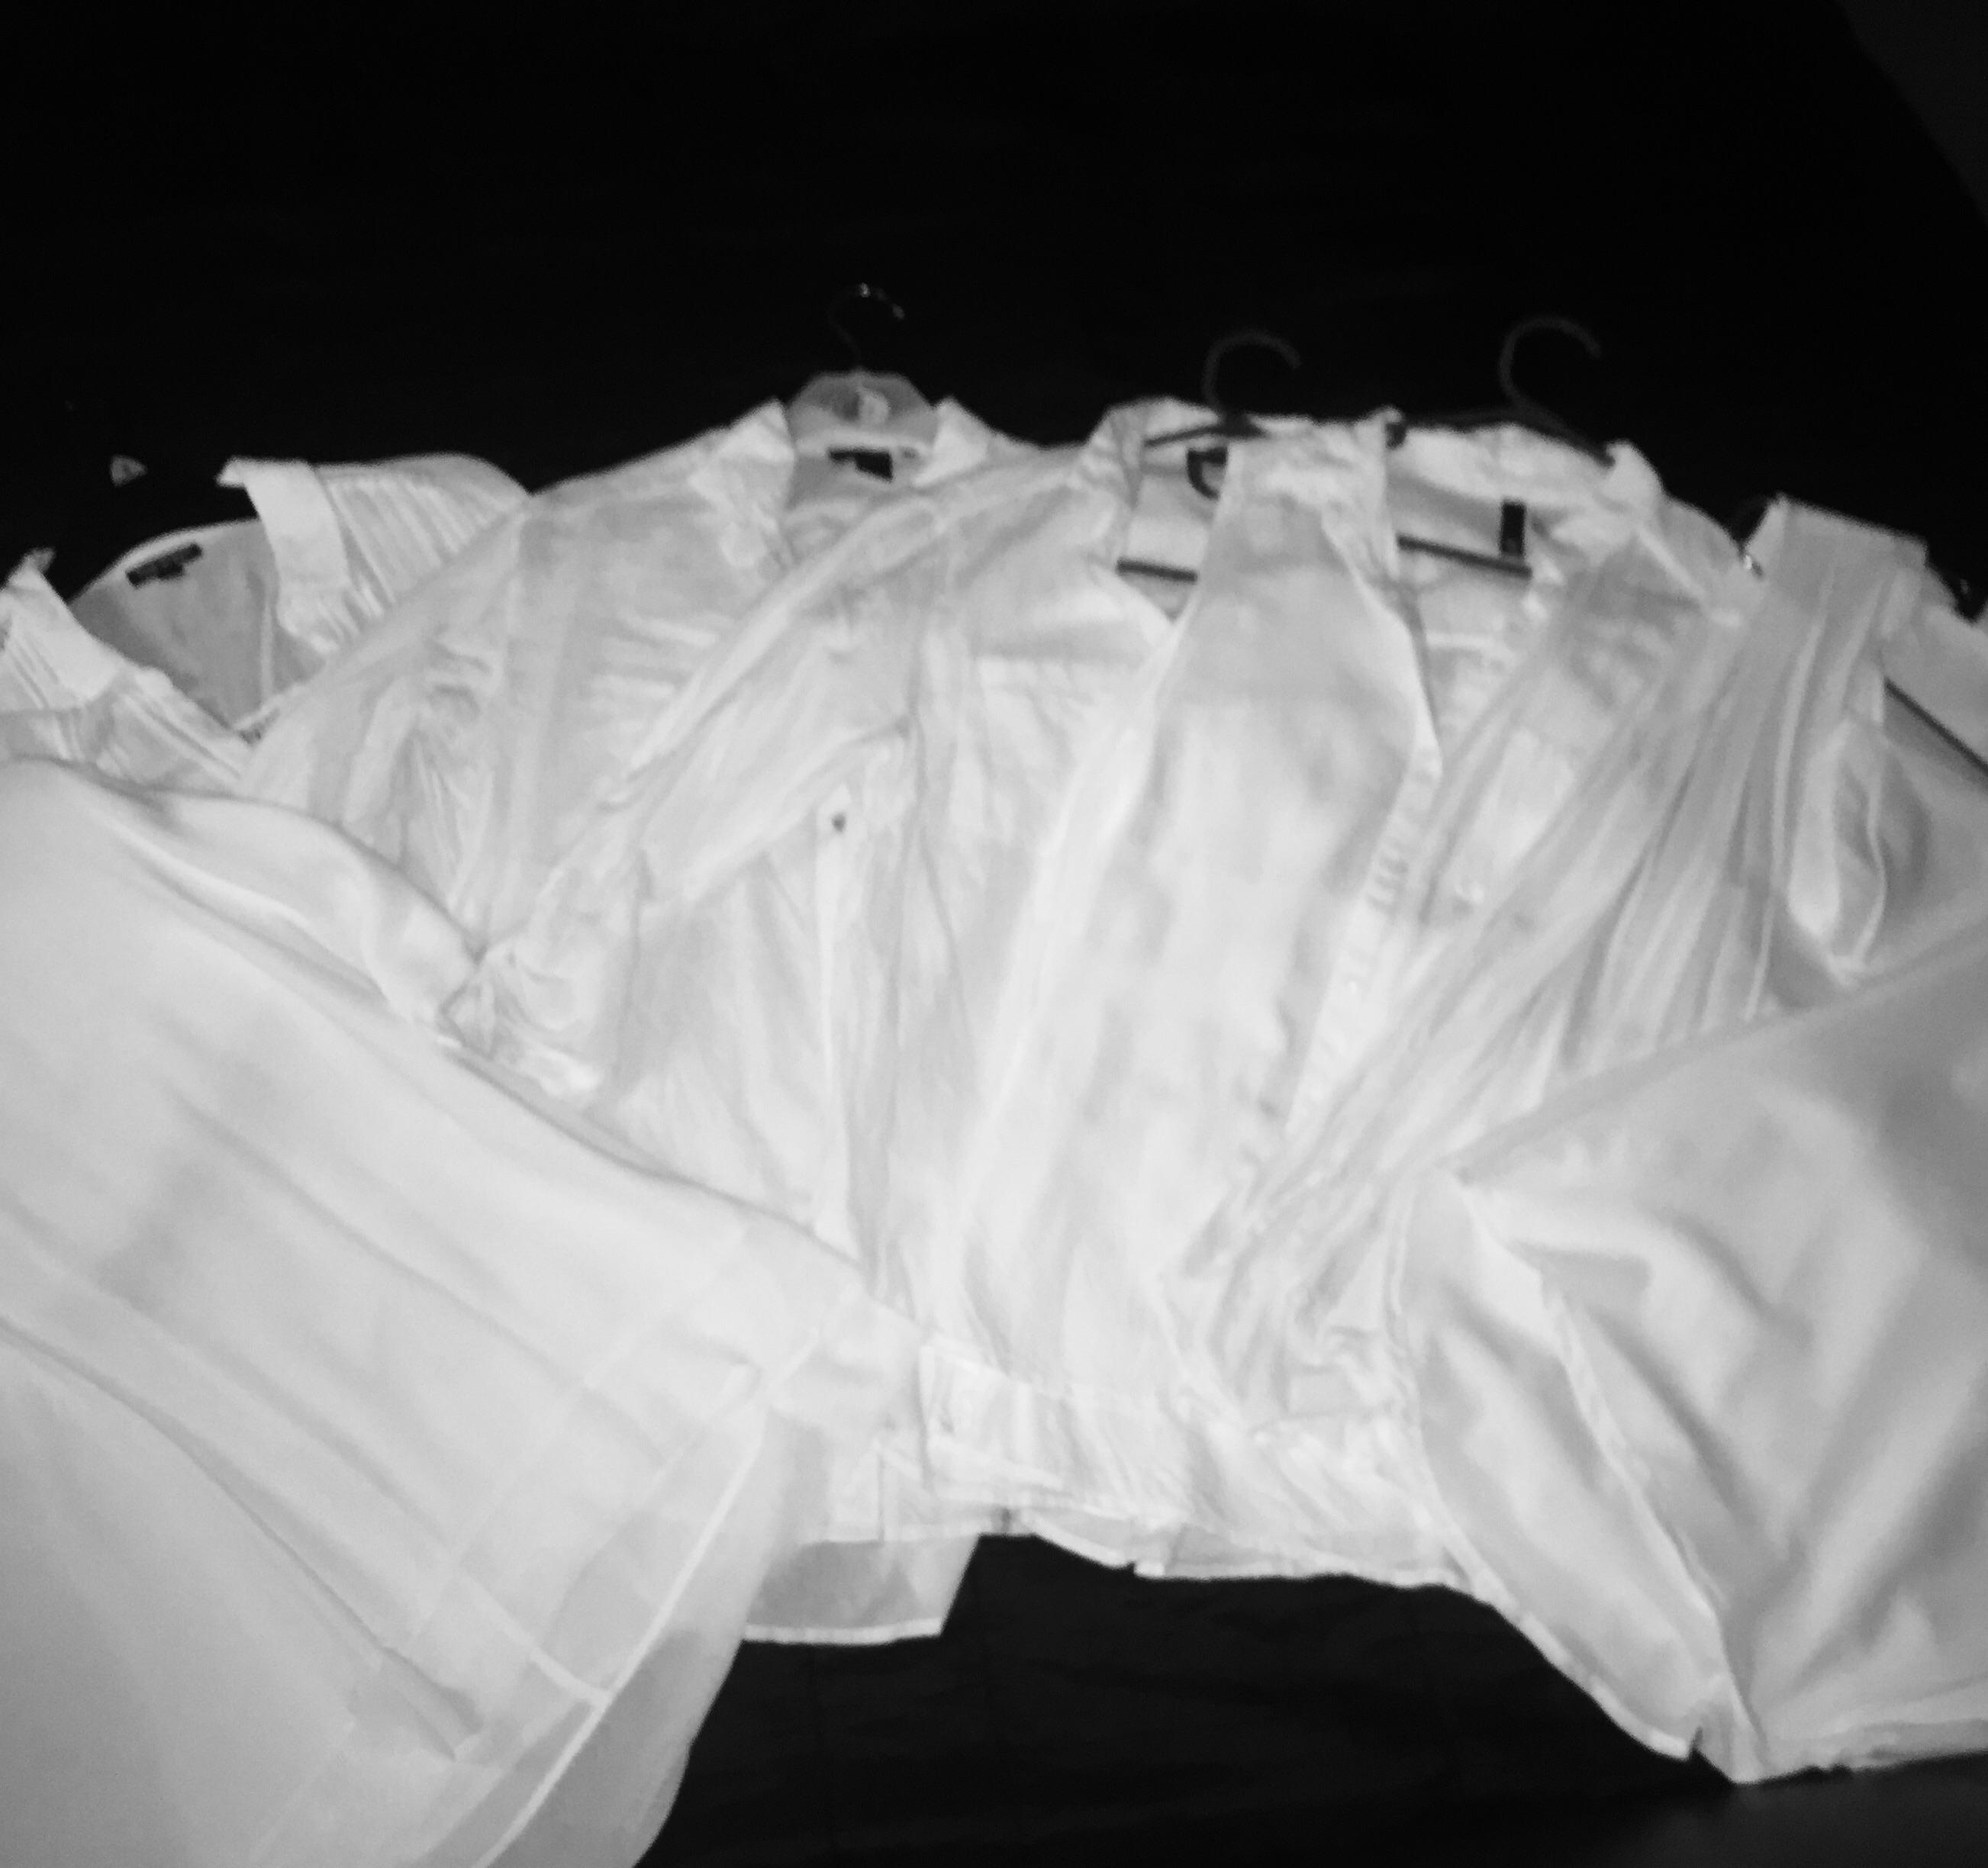 Compulsive, repetitive clothing purchases